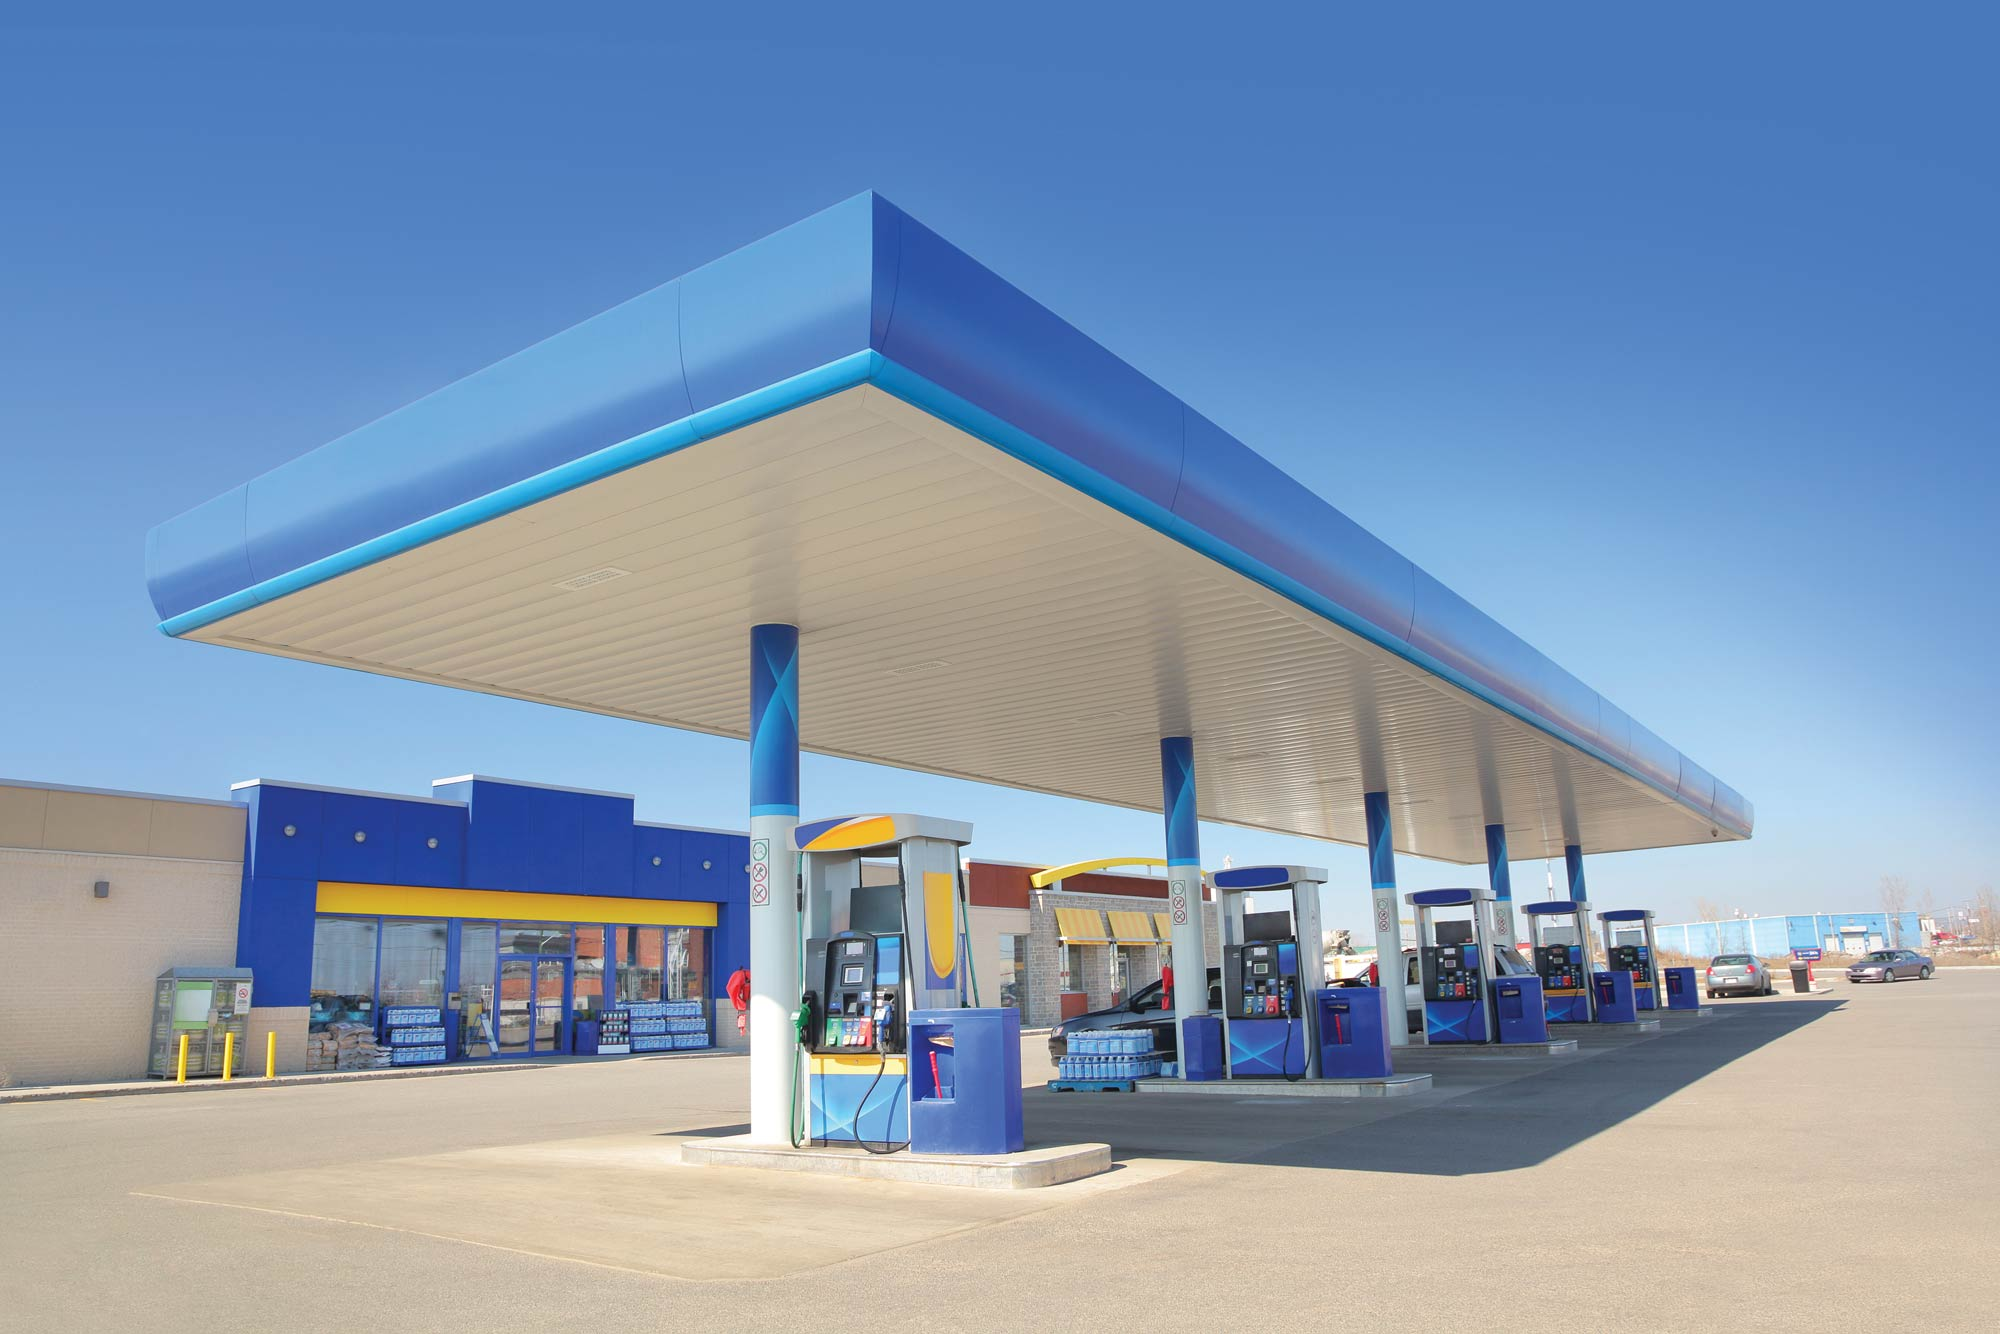 modern gas station and convenience store under a clear blue sky